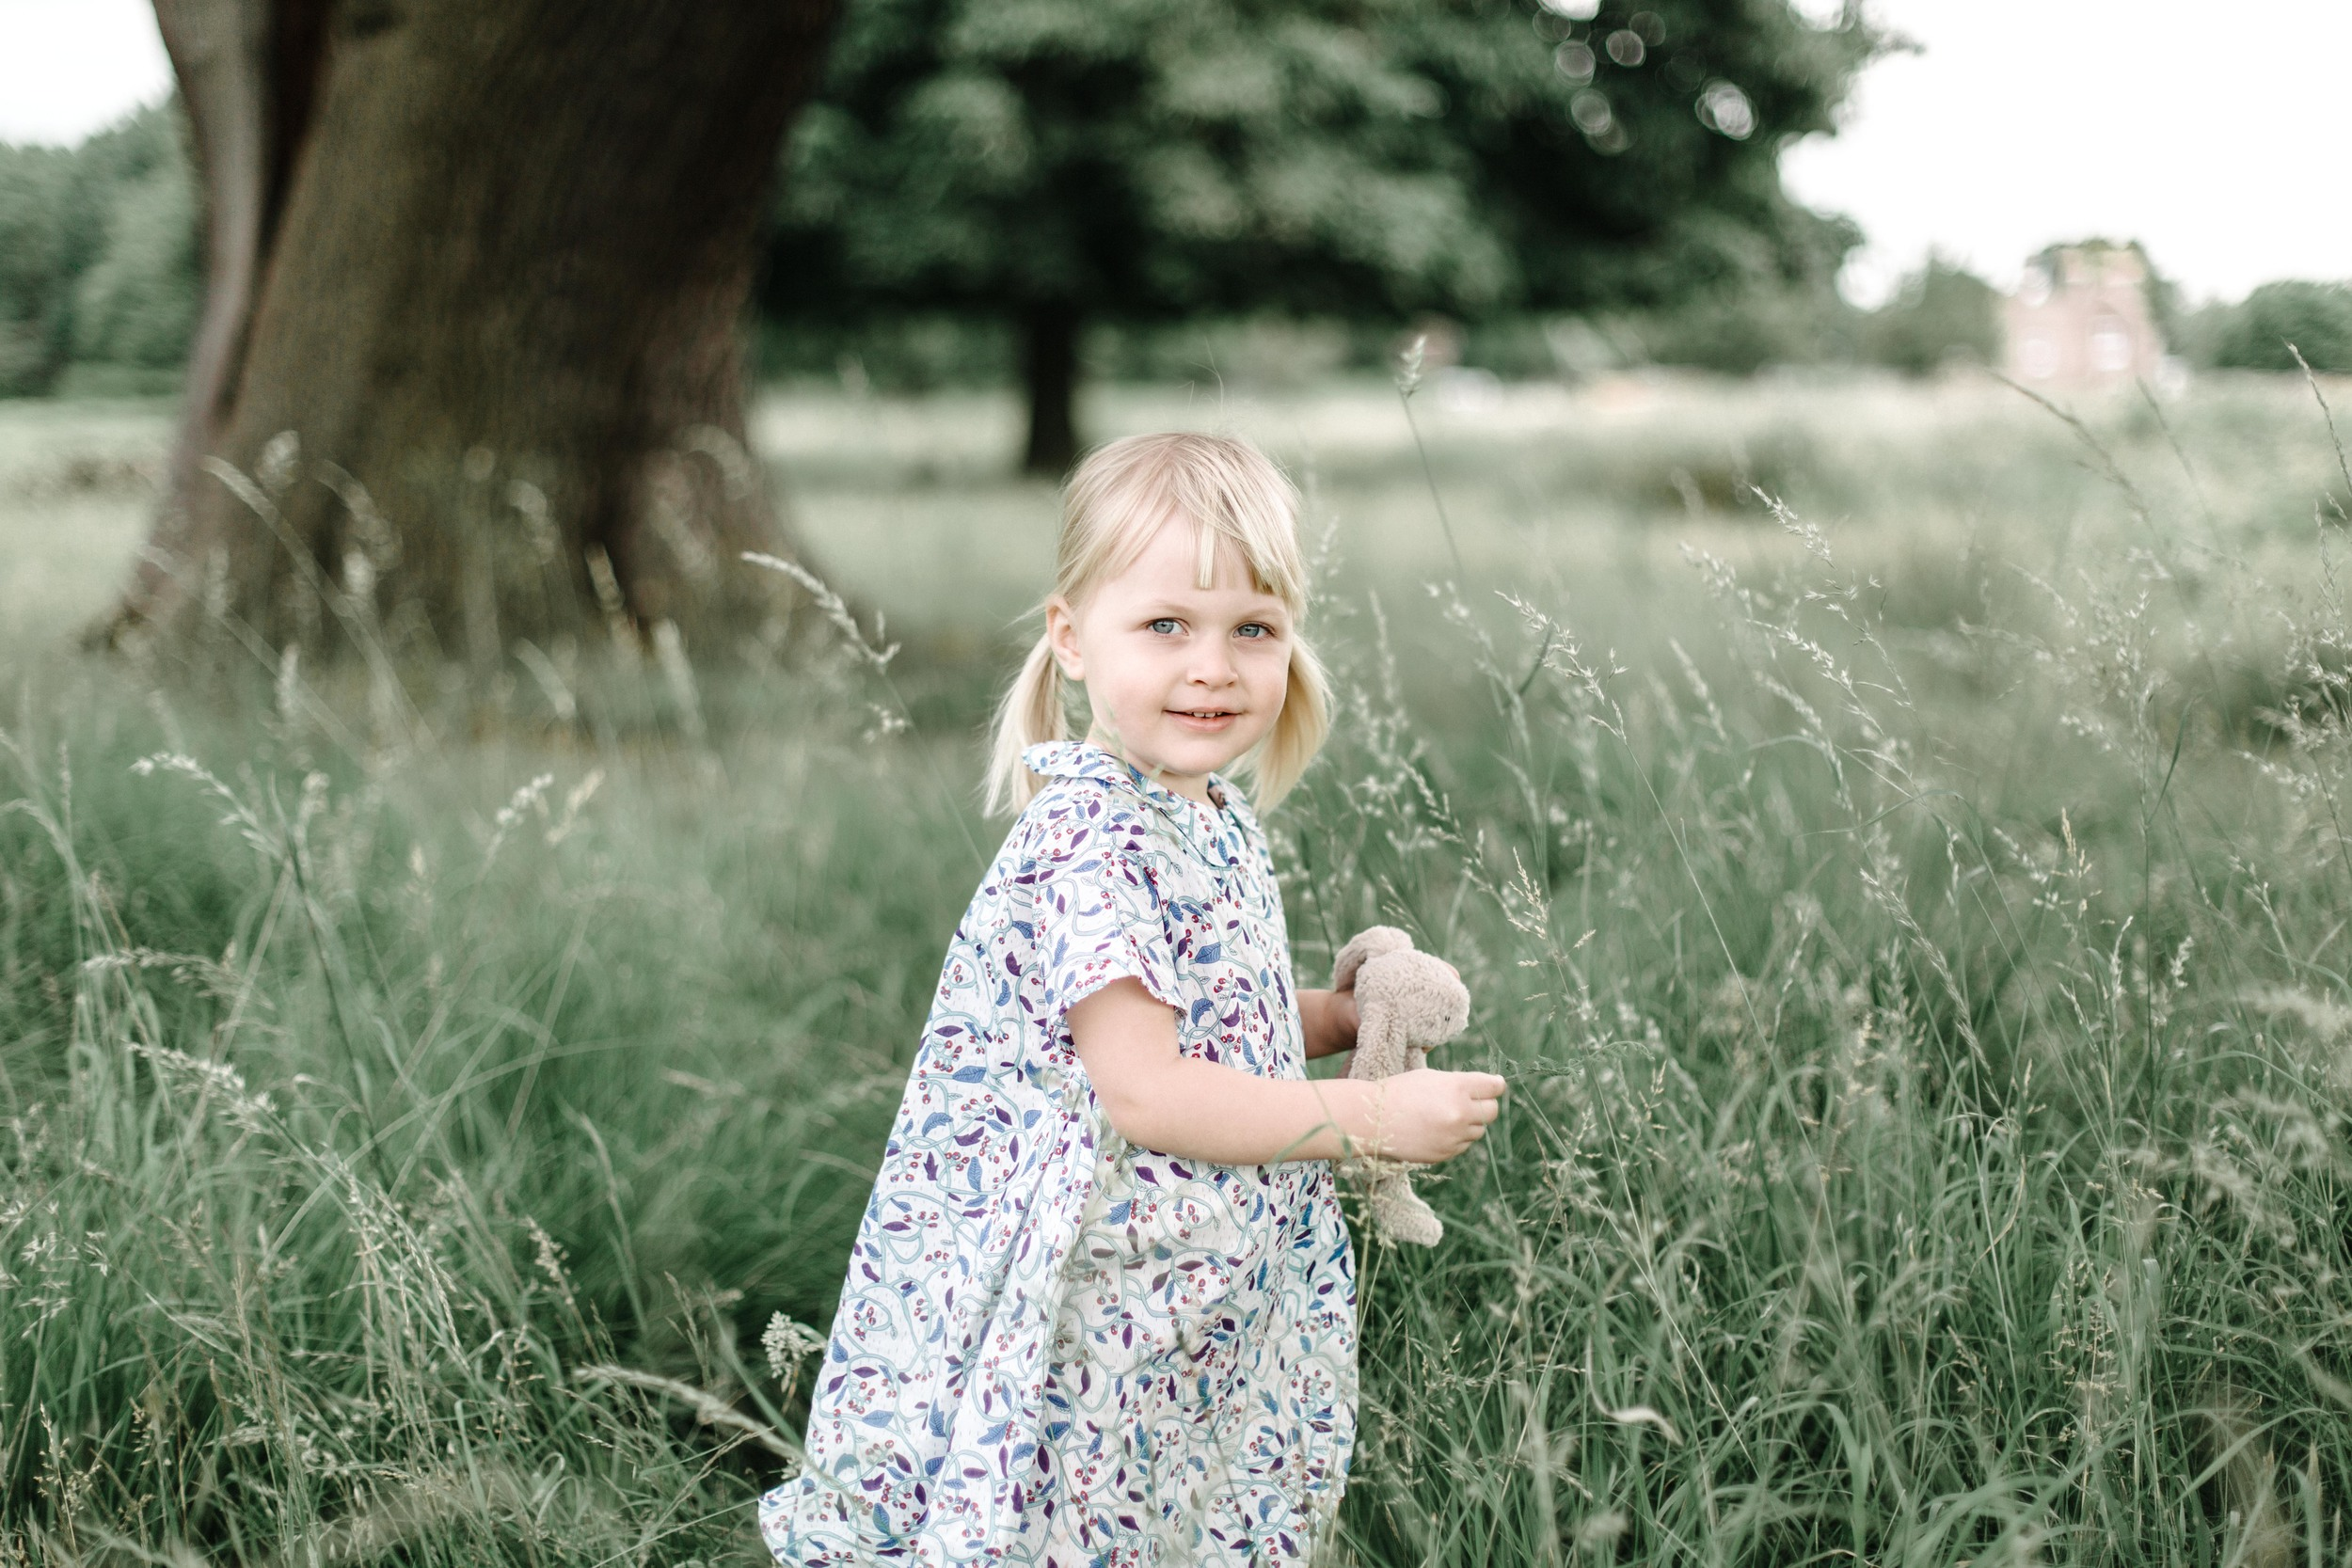 LittleKin_Photography_family_photoshoot_richmond_helene-24.jpg